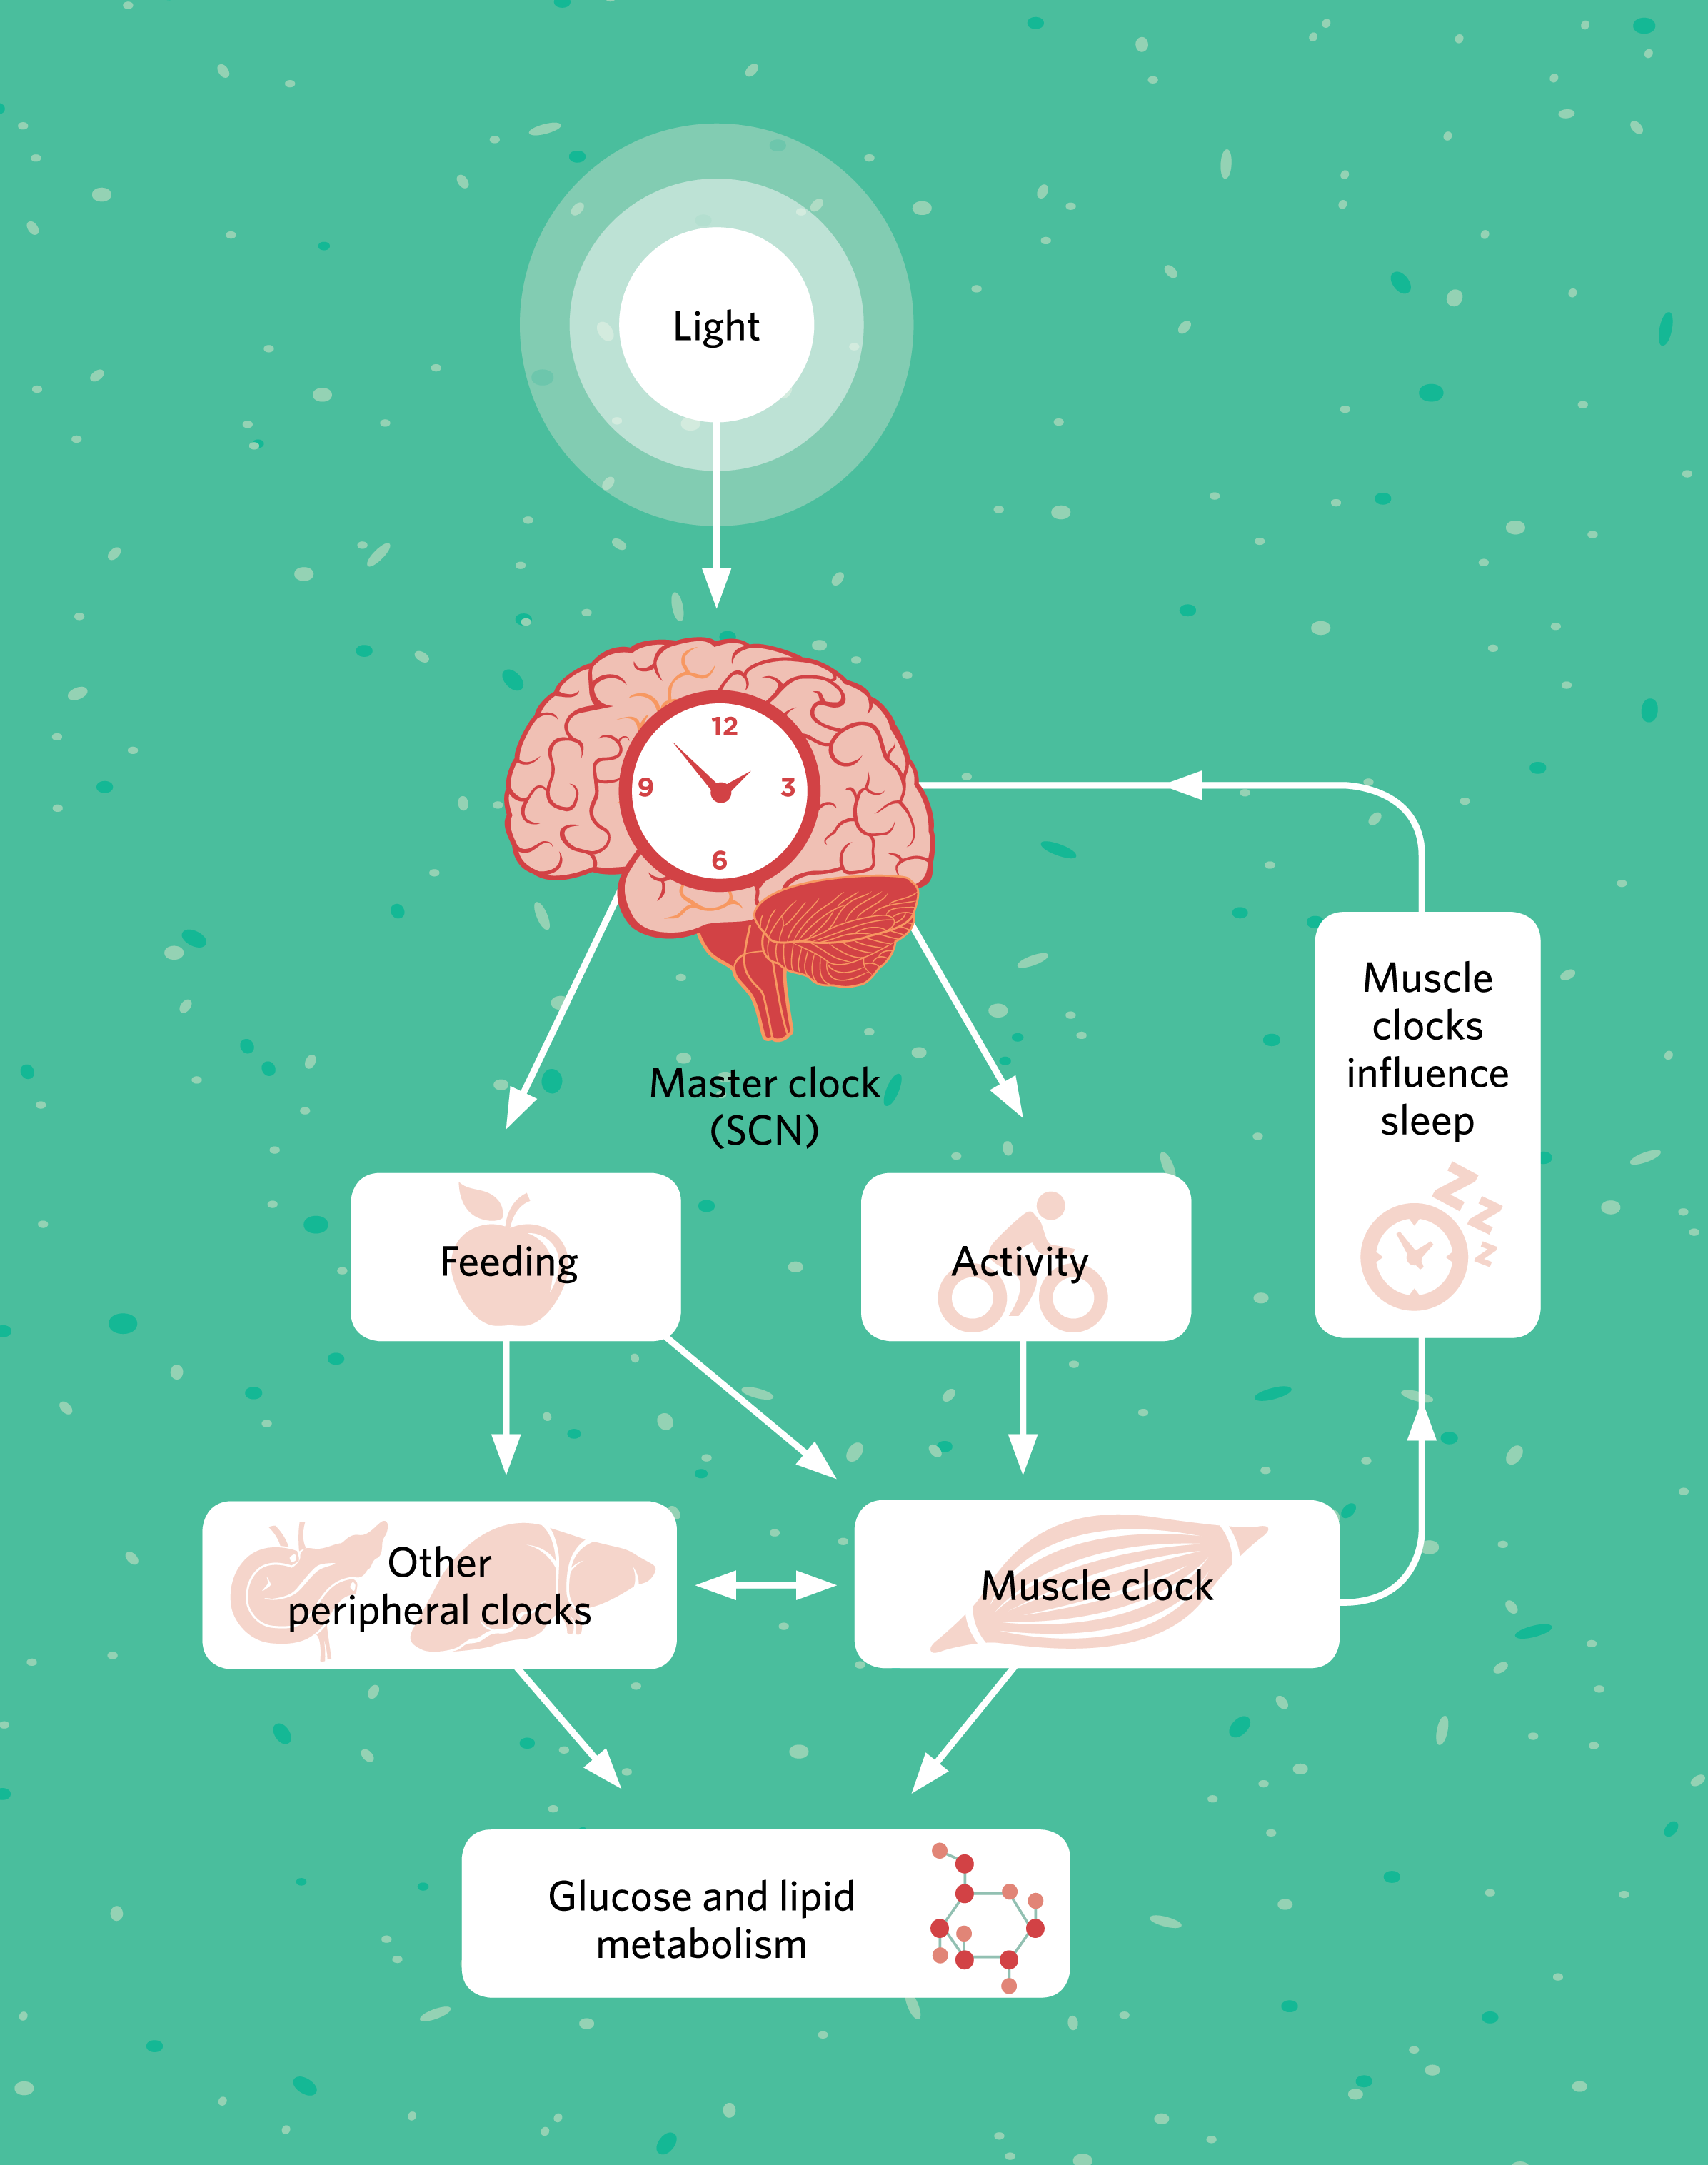 Muscle Clocks Play A Role In Regulating Metabolism The Scientist Well Human Cell Structure Diagram Besides Full Body Of Muscles Time Intrinsic Timekeepers Keep Bodys Metabolic Pathways Sync With Activity And Rest Cycles During Day